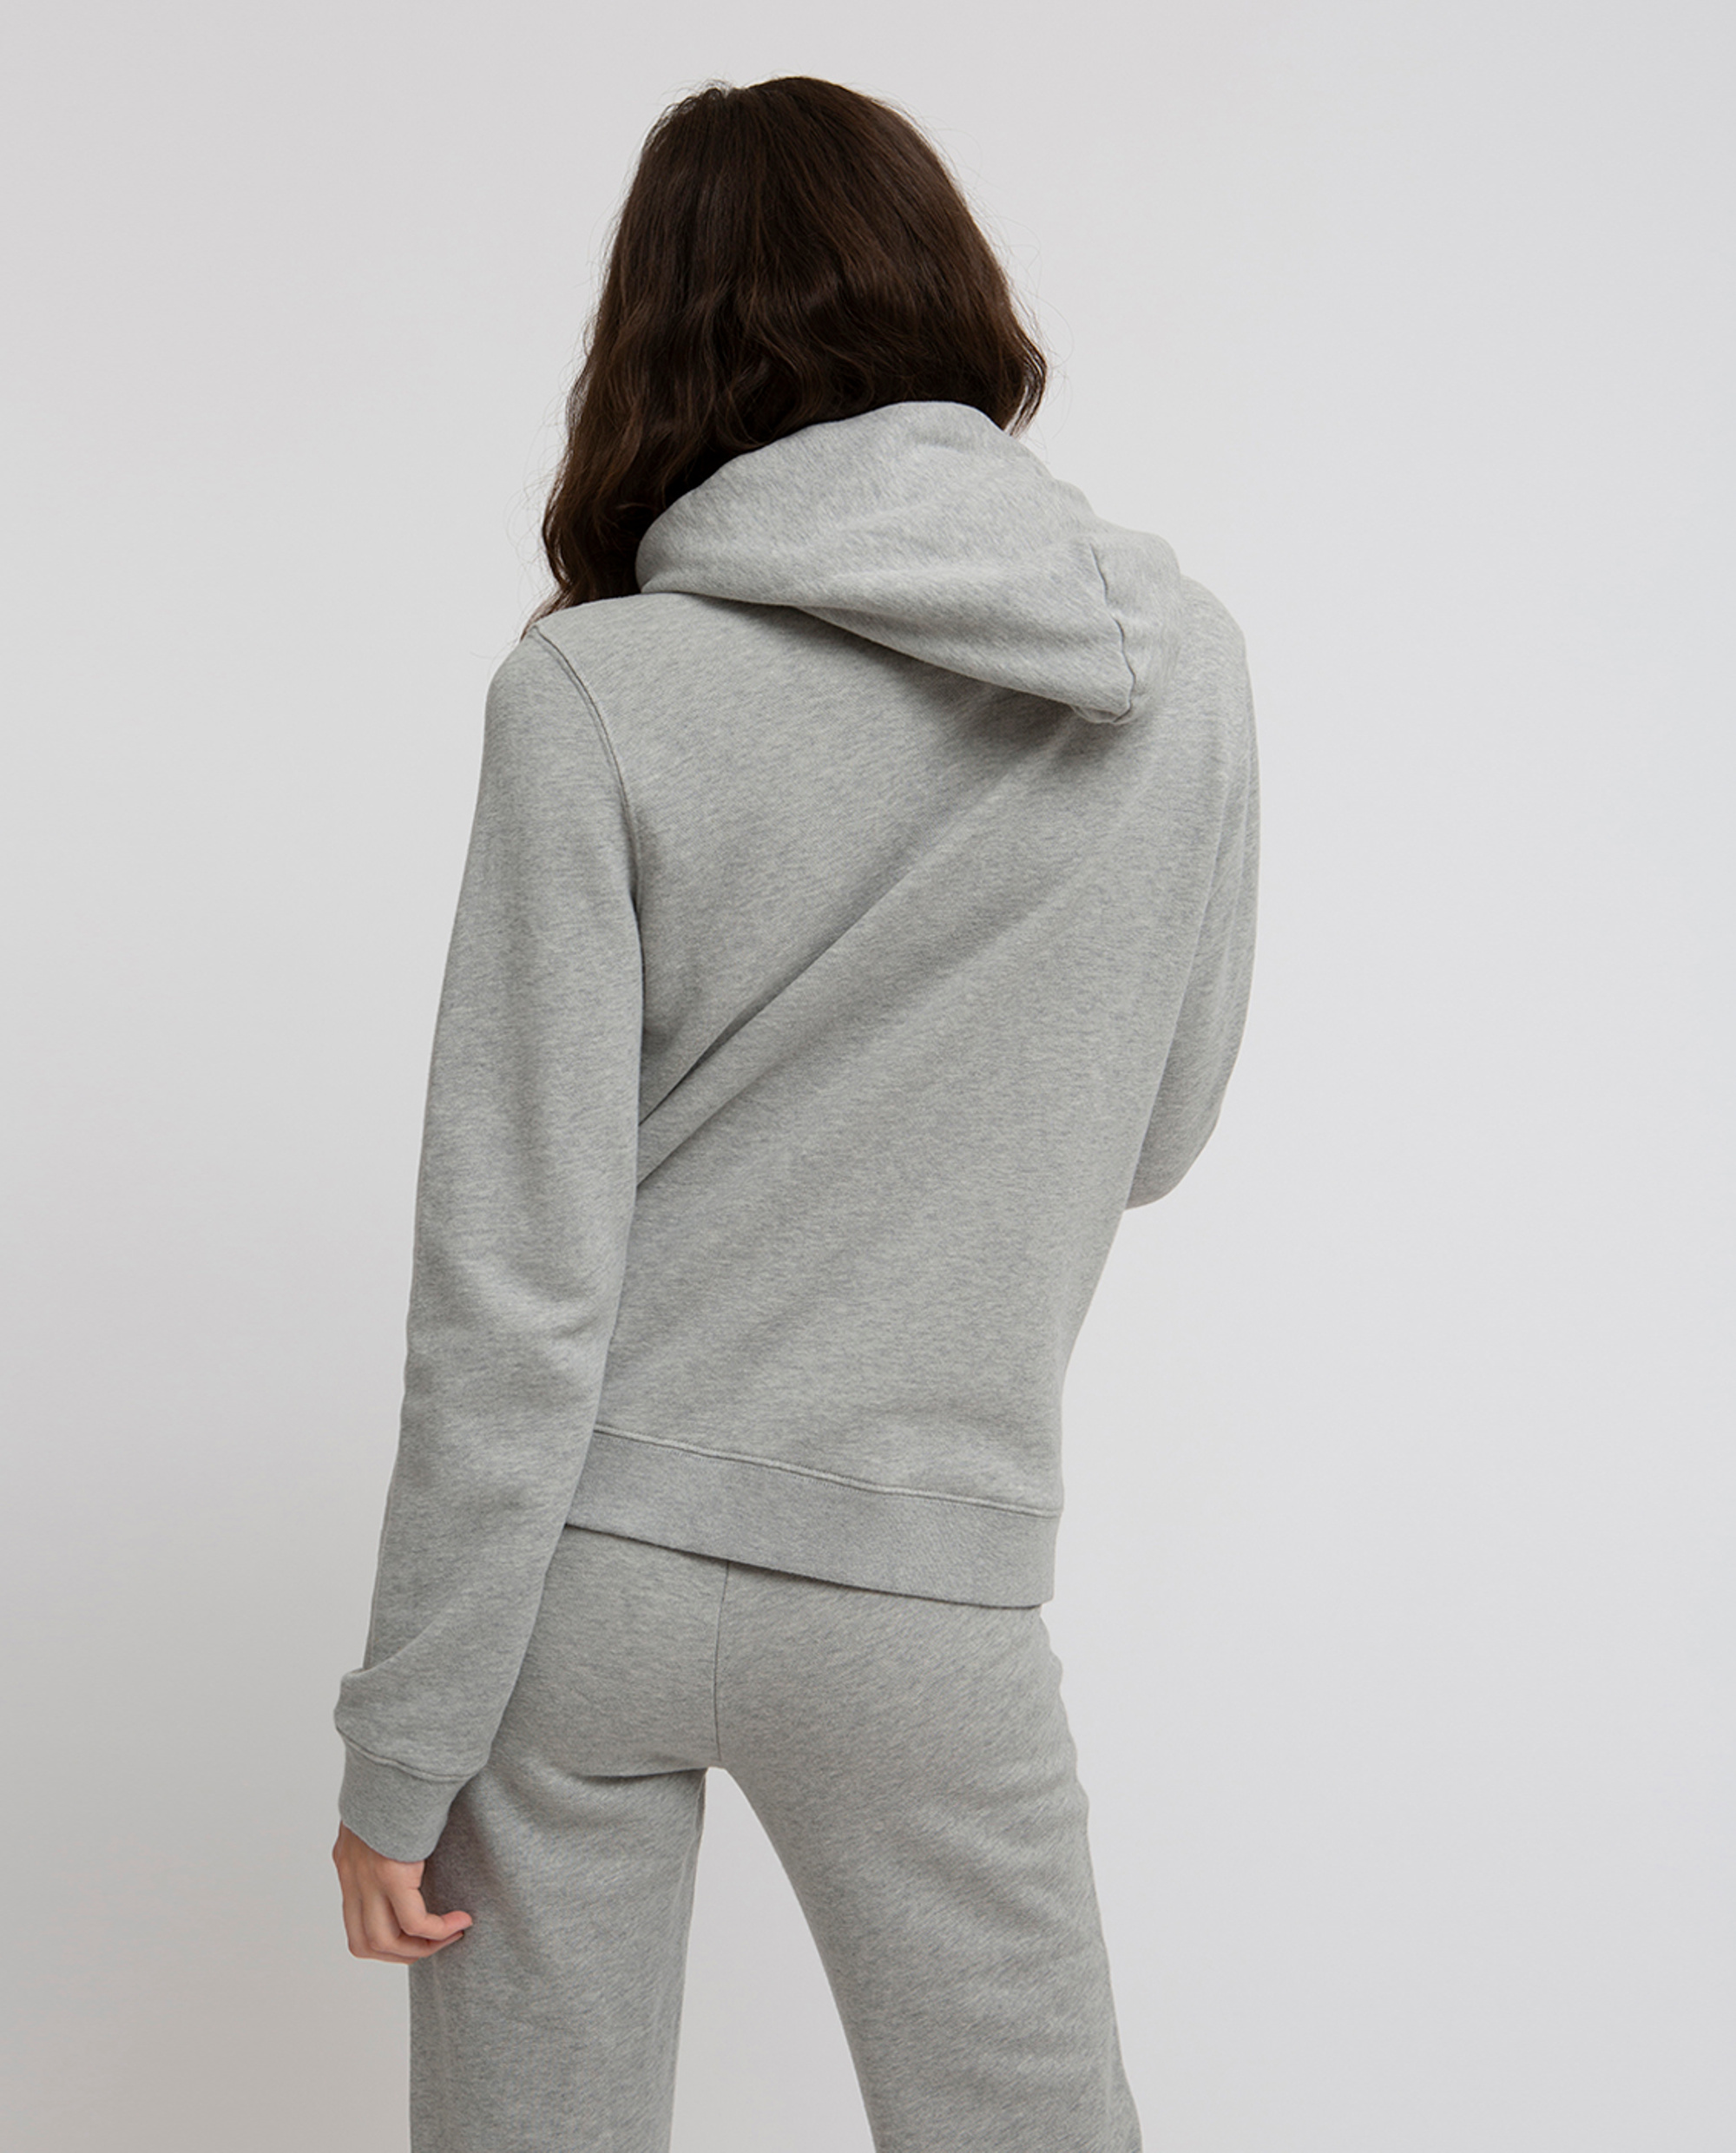 Kimberly Hood, Light Warm Gray